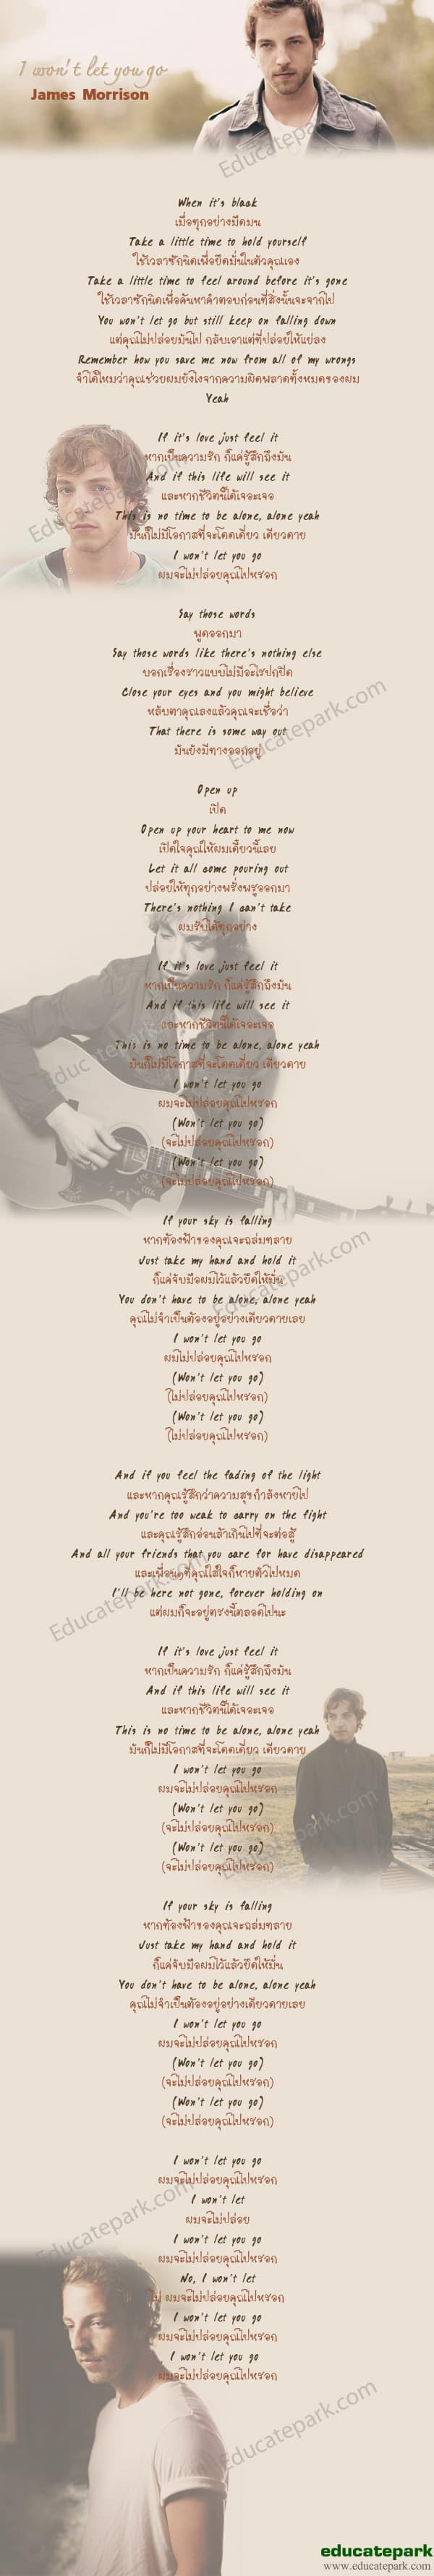 แปลเพลง I Won't Let You Go - James Morrison